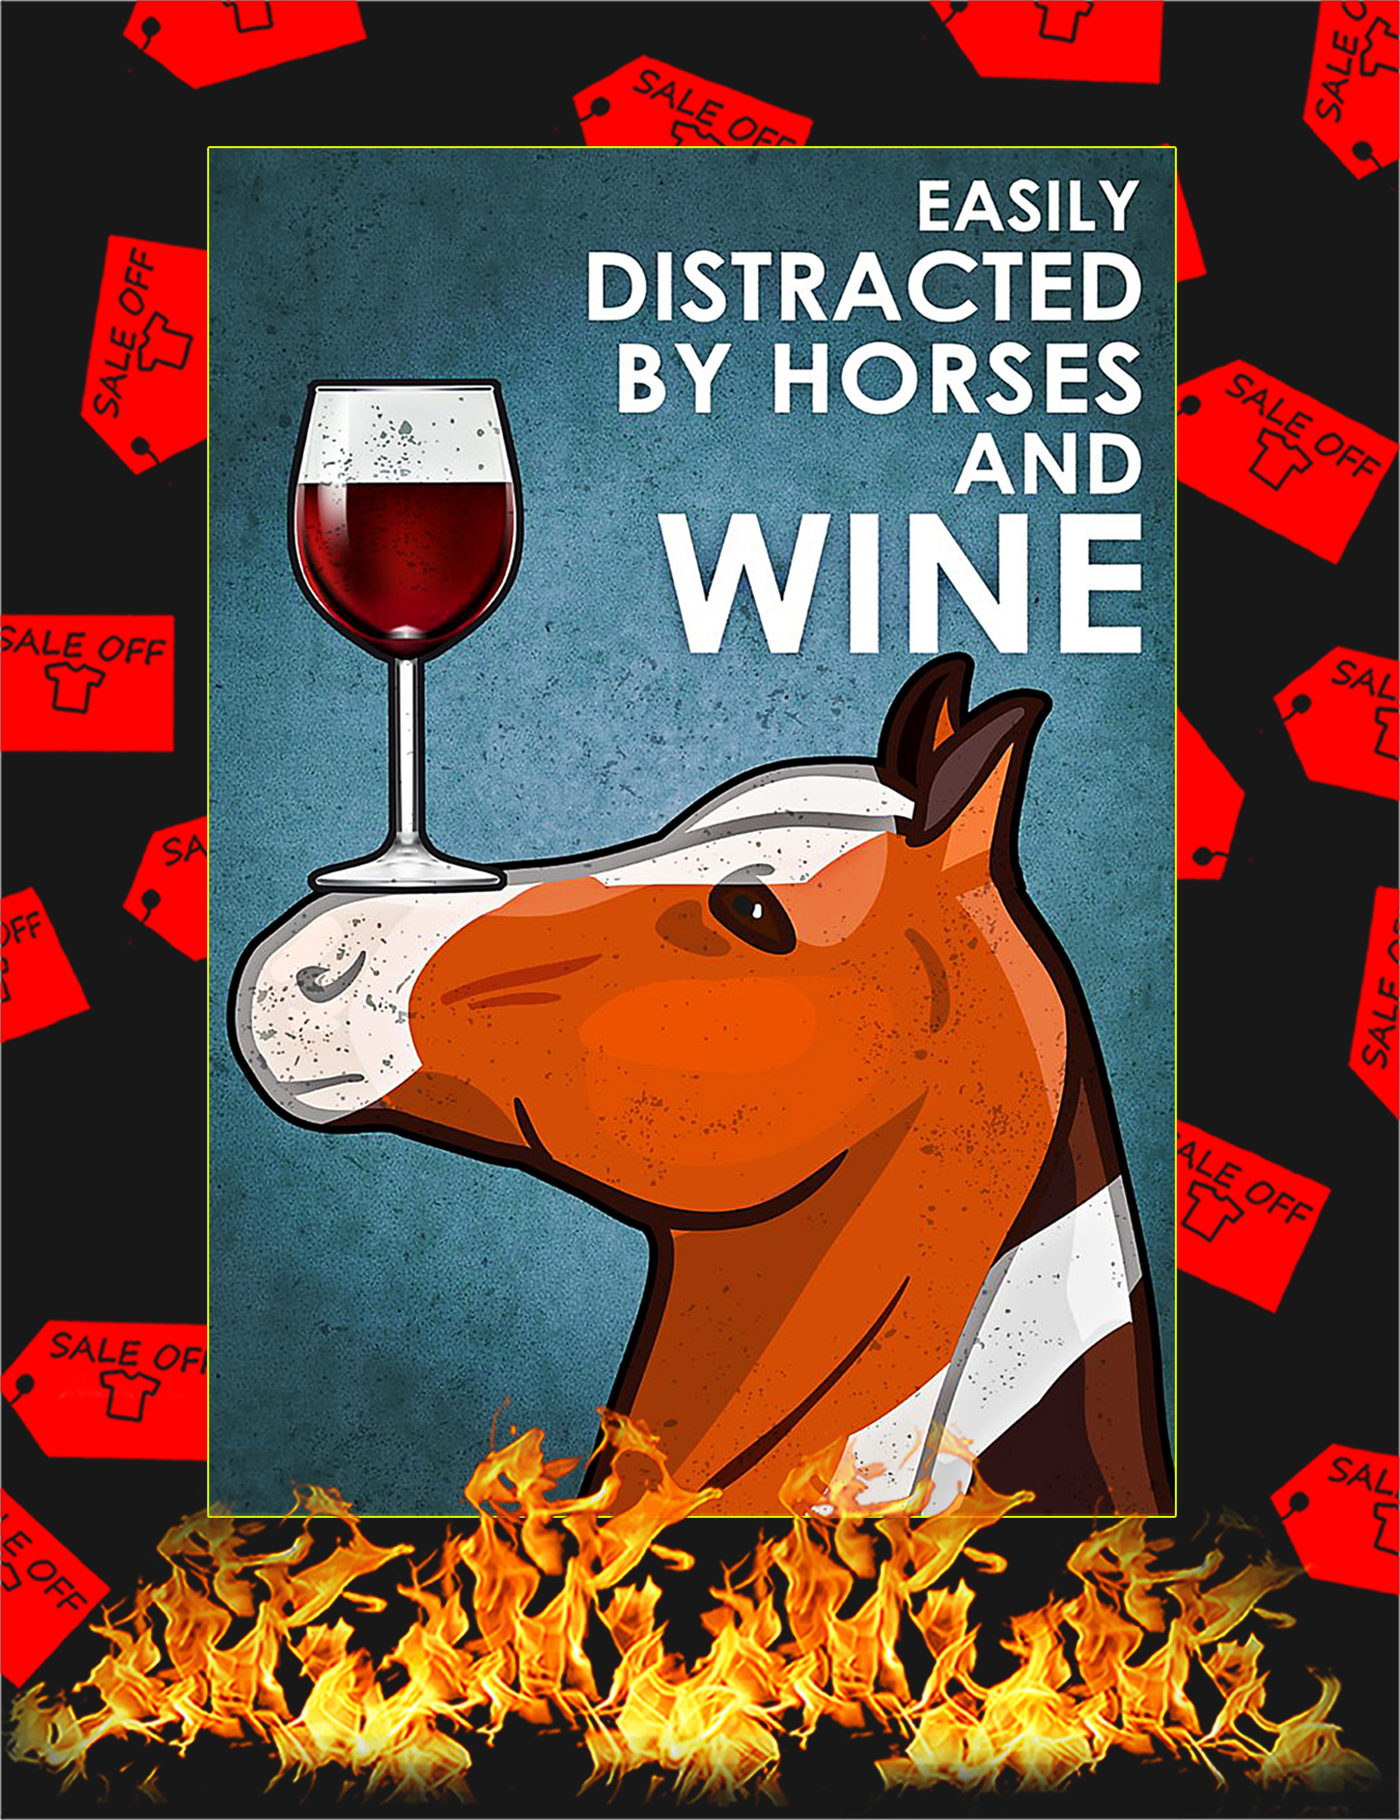 Easily distracted by horses and wine poster - A1